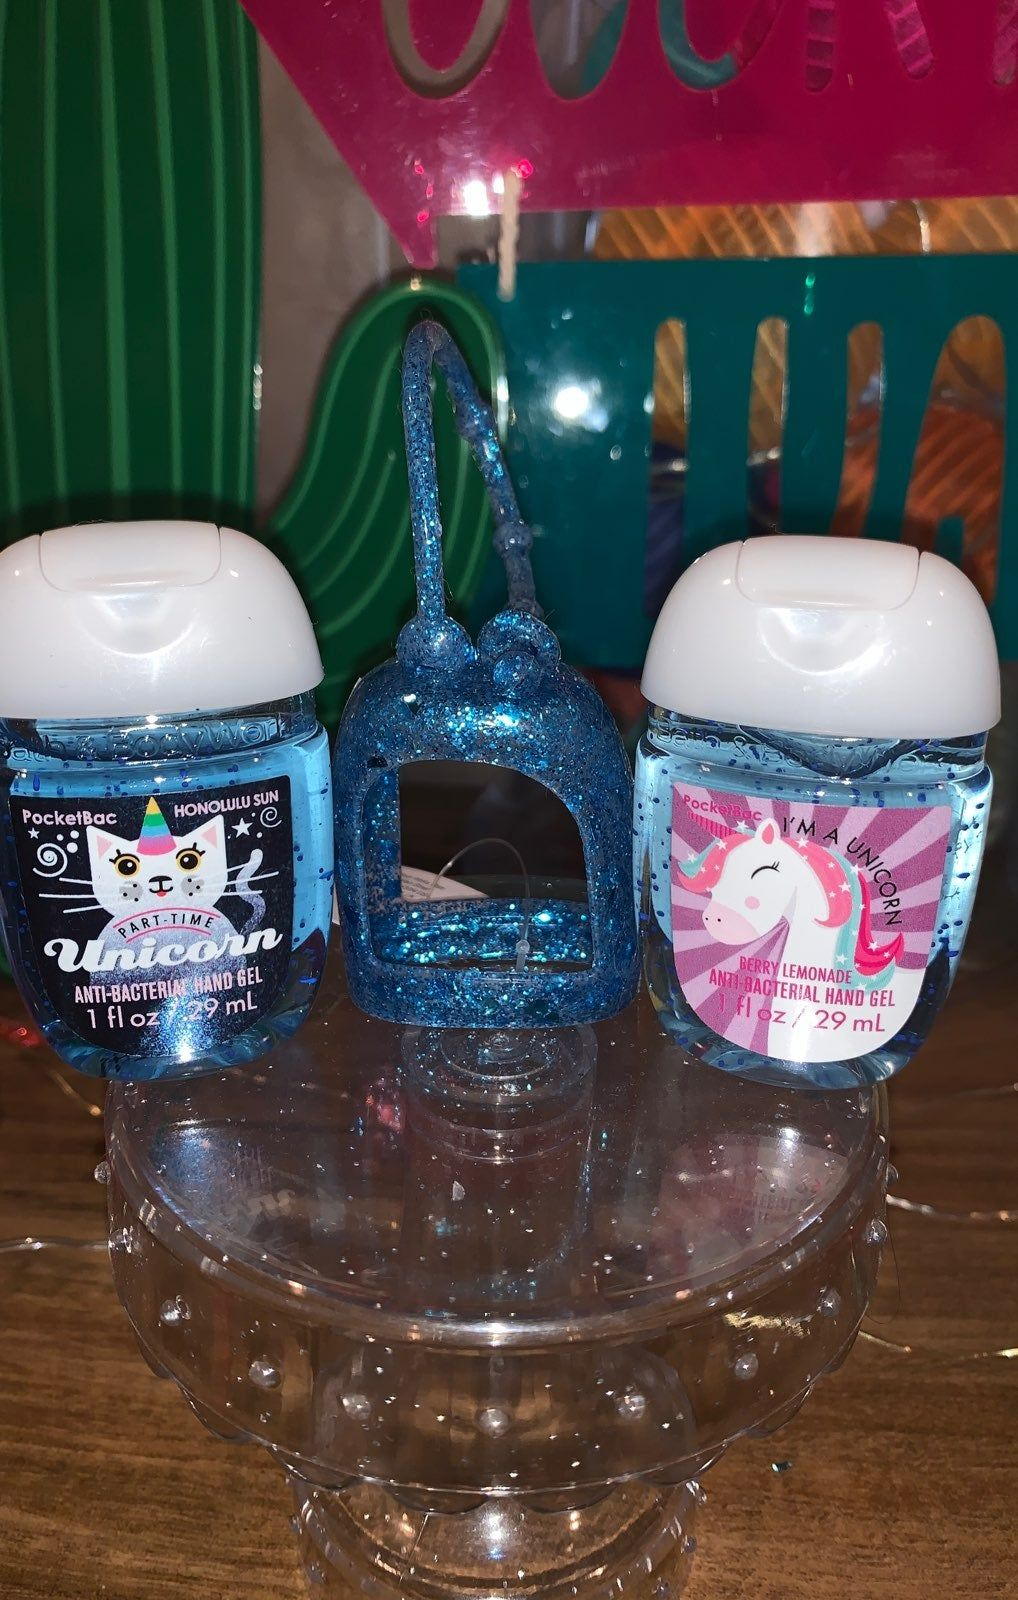 Pin By Audrey Brickwood On 2020 Pocketbac From Bath And Body Works